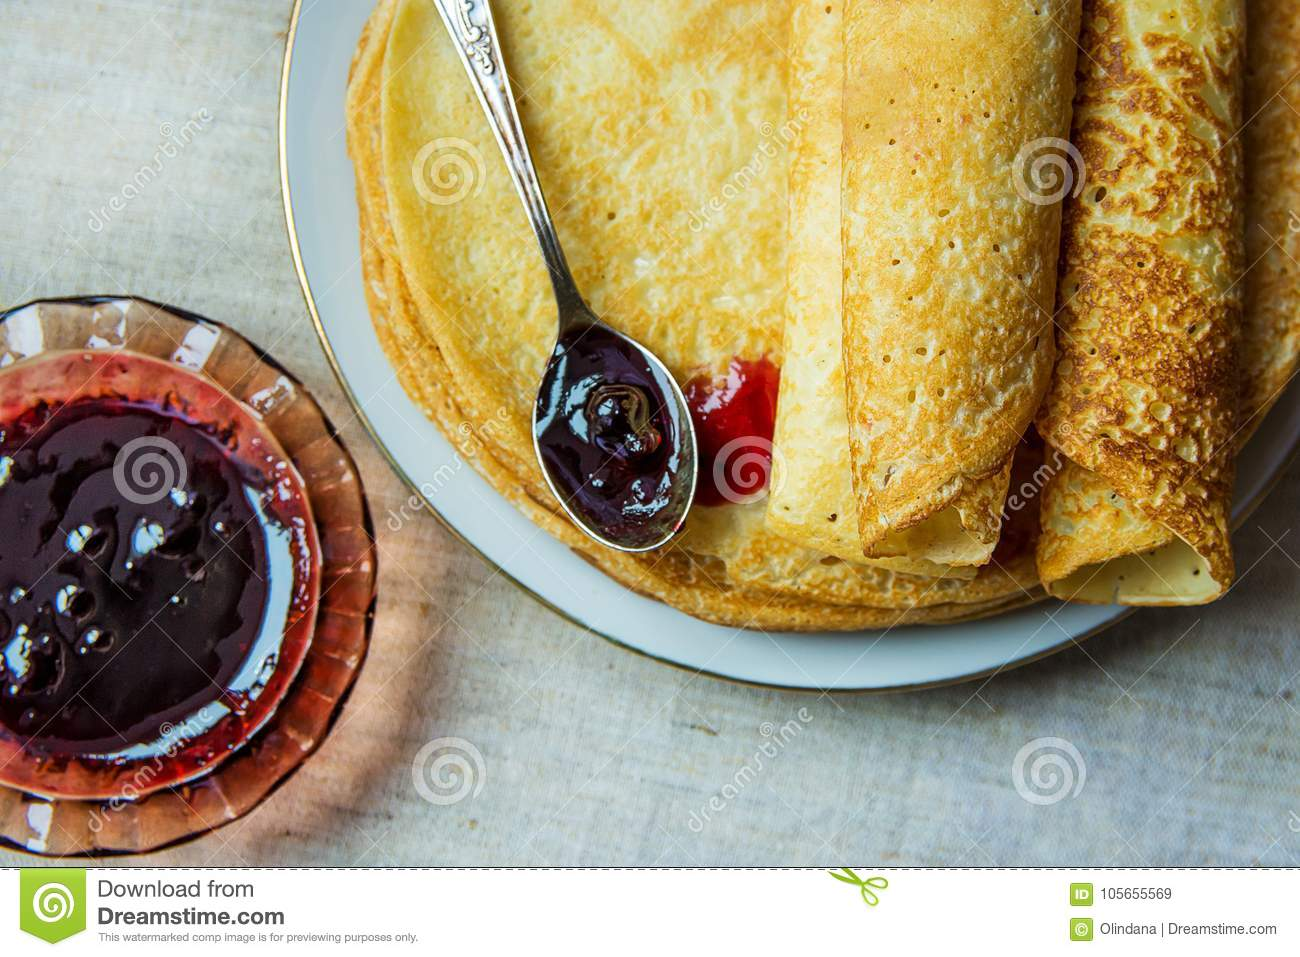 Stack of Rolled Golden Crepes on White Plate Black Currant Jam in Crystal Rosette Spoon Linen Tablecloth